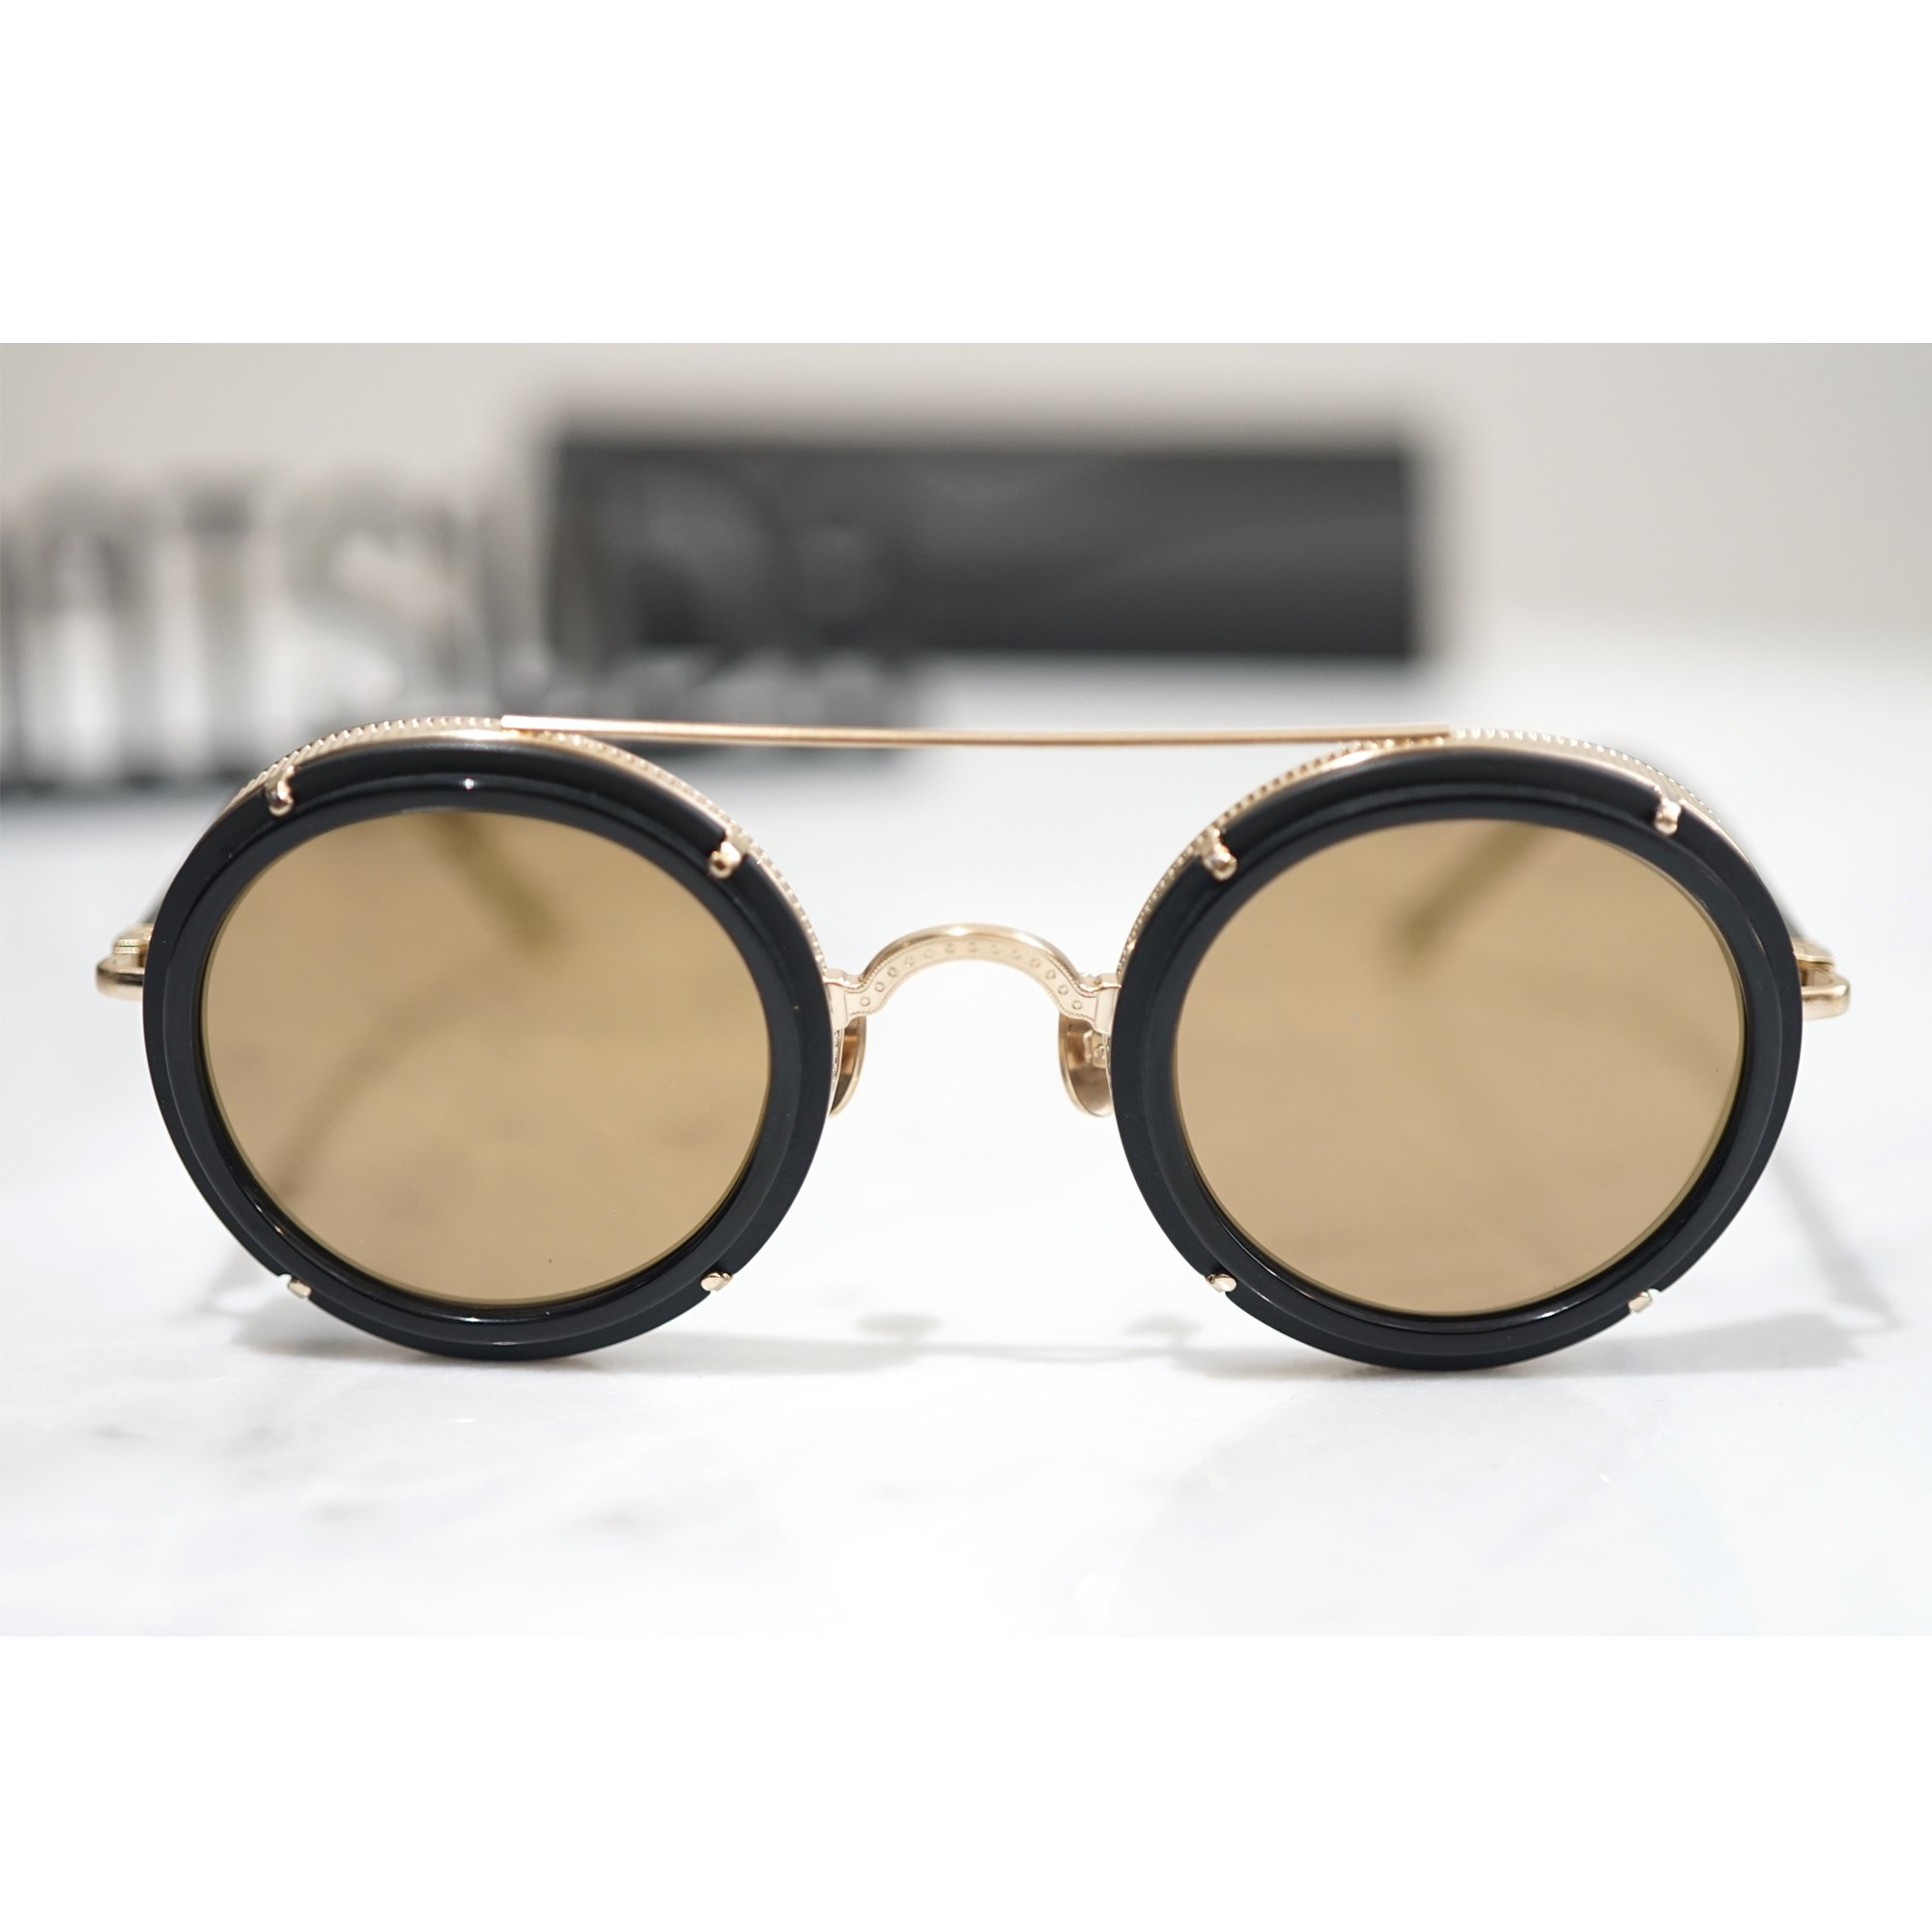 MATSUDA EYEWEAR-M3080 DOUBLE BRIDGE SUNGLASSES